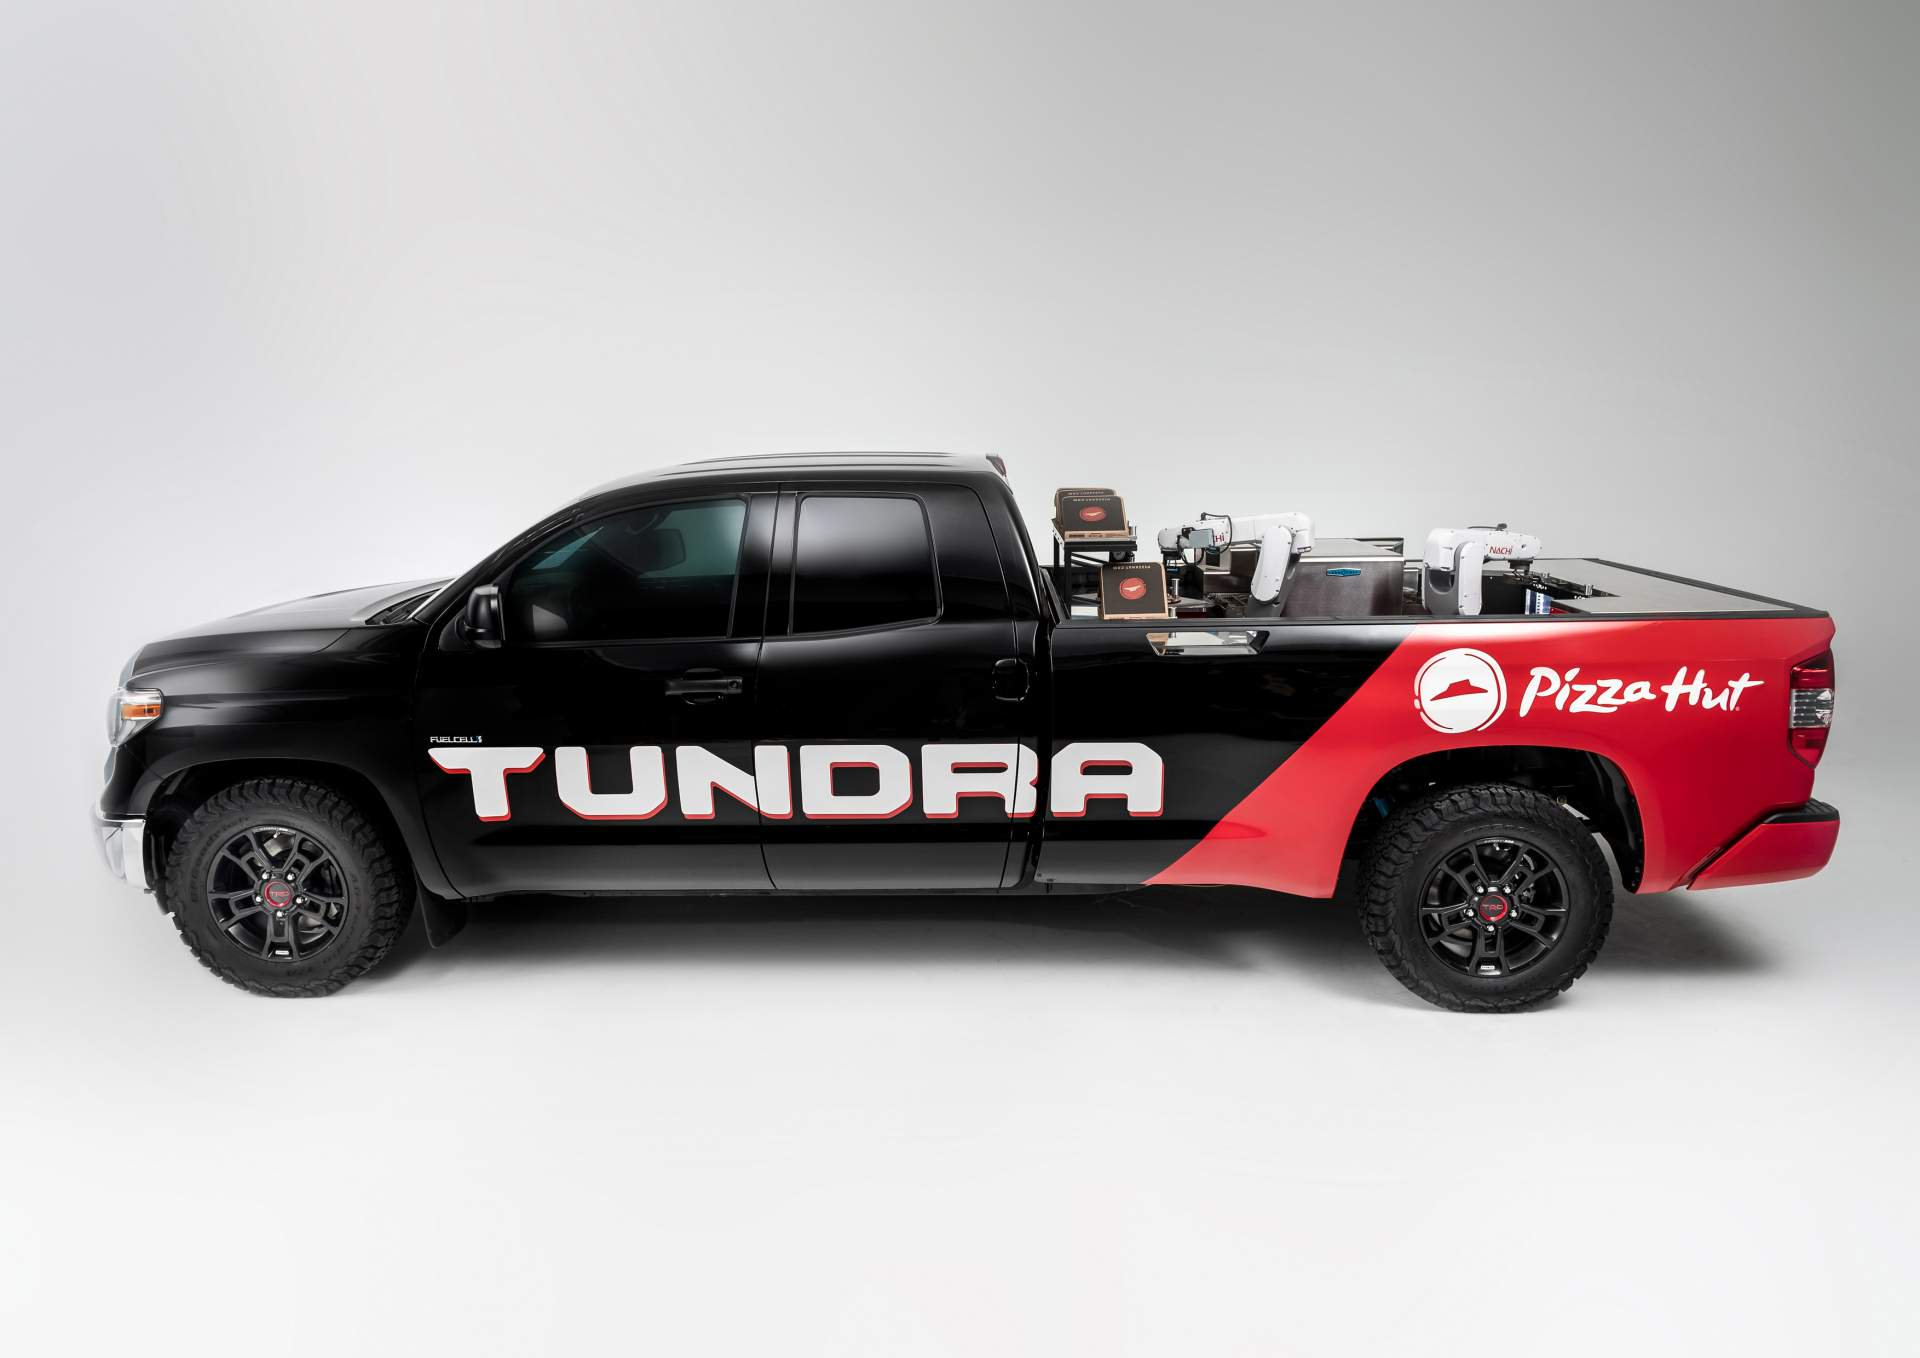 a2b58893-toyota-pie-pro-tundra-hydrogen-fuel-cell-concept-1